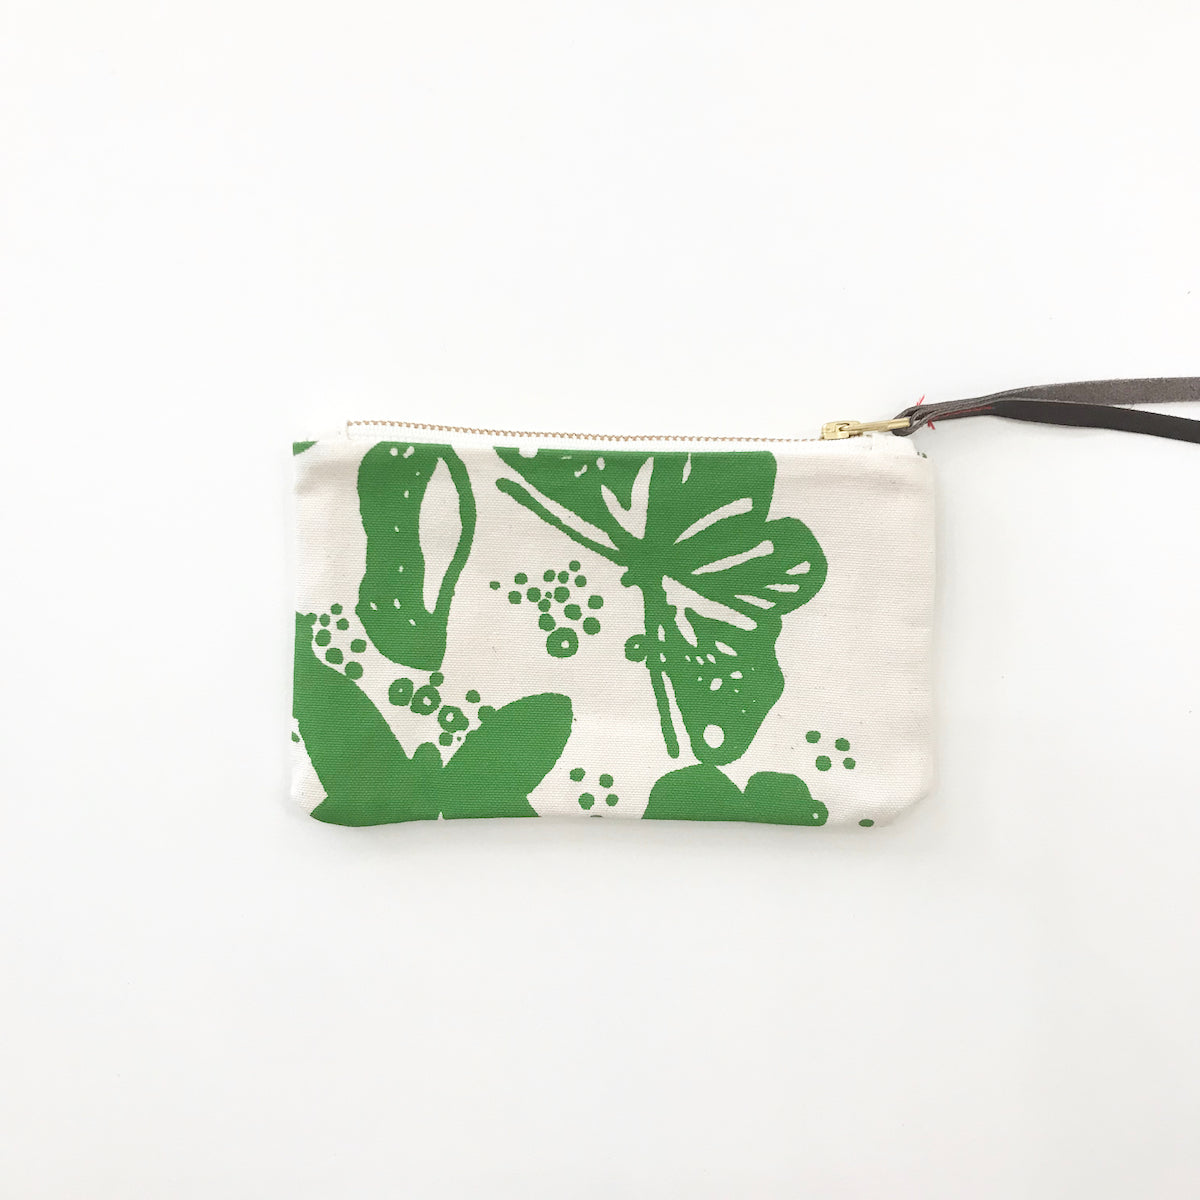 SHIPS NOW! EVERGREEN BUTTERFLIES WRISTLET ZIPPER BAG